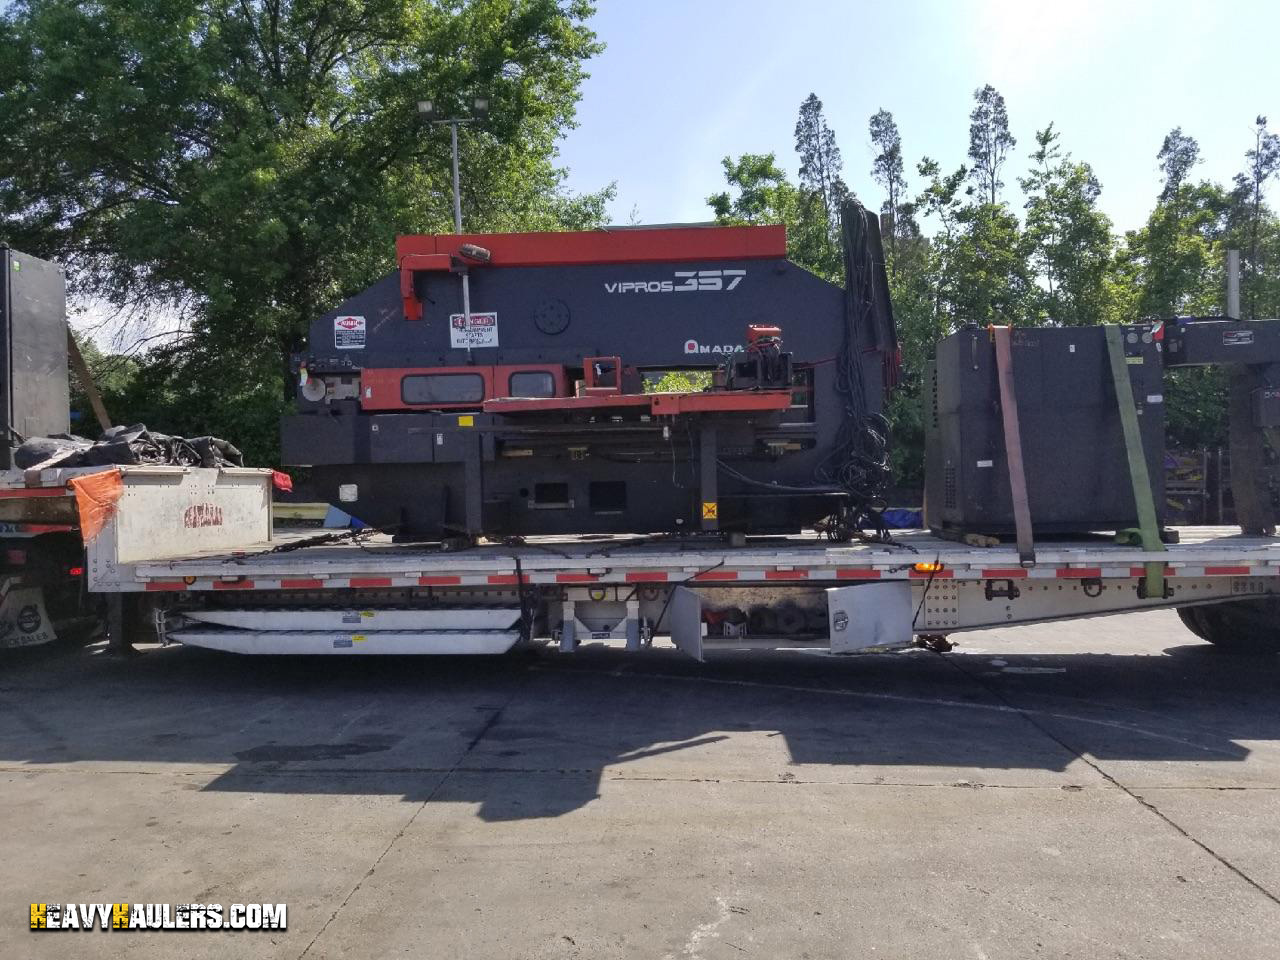 A turret press being shipped